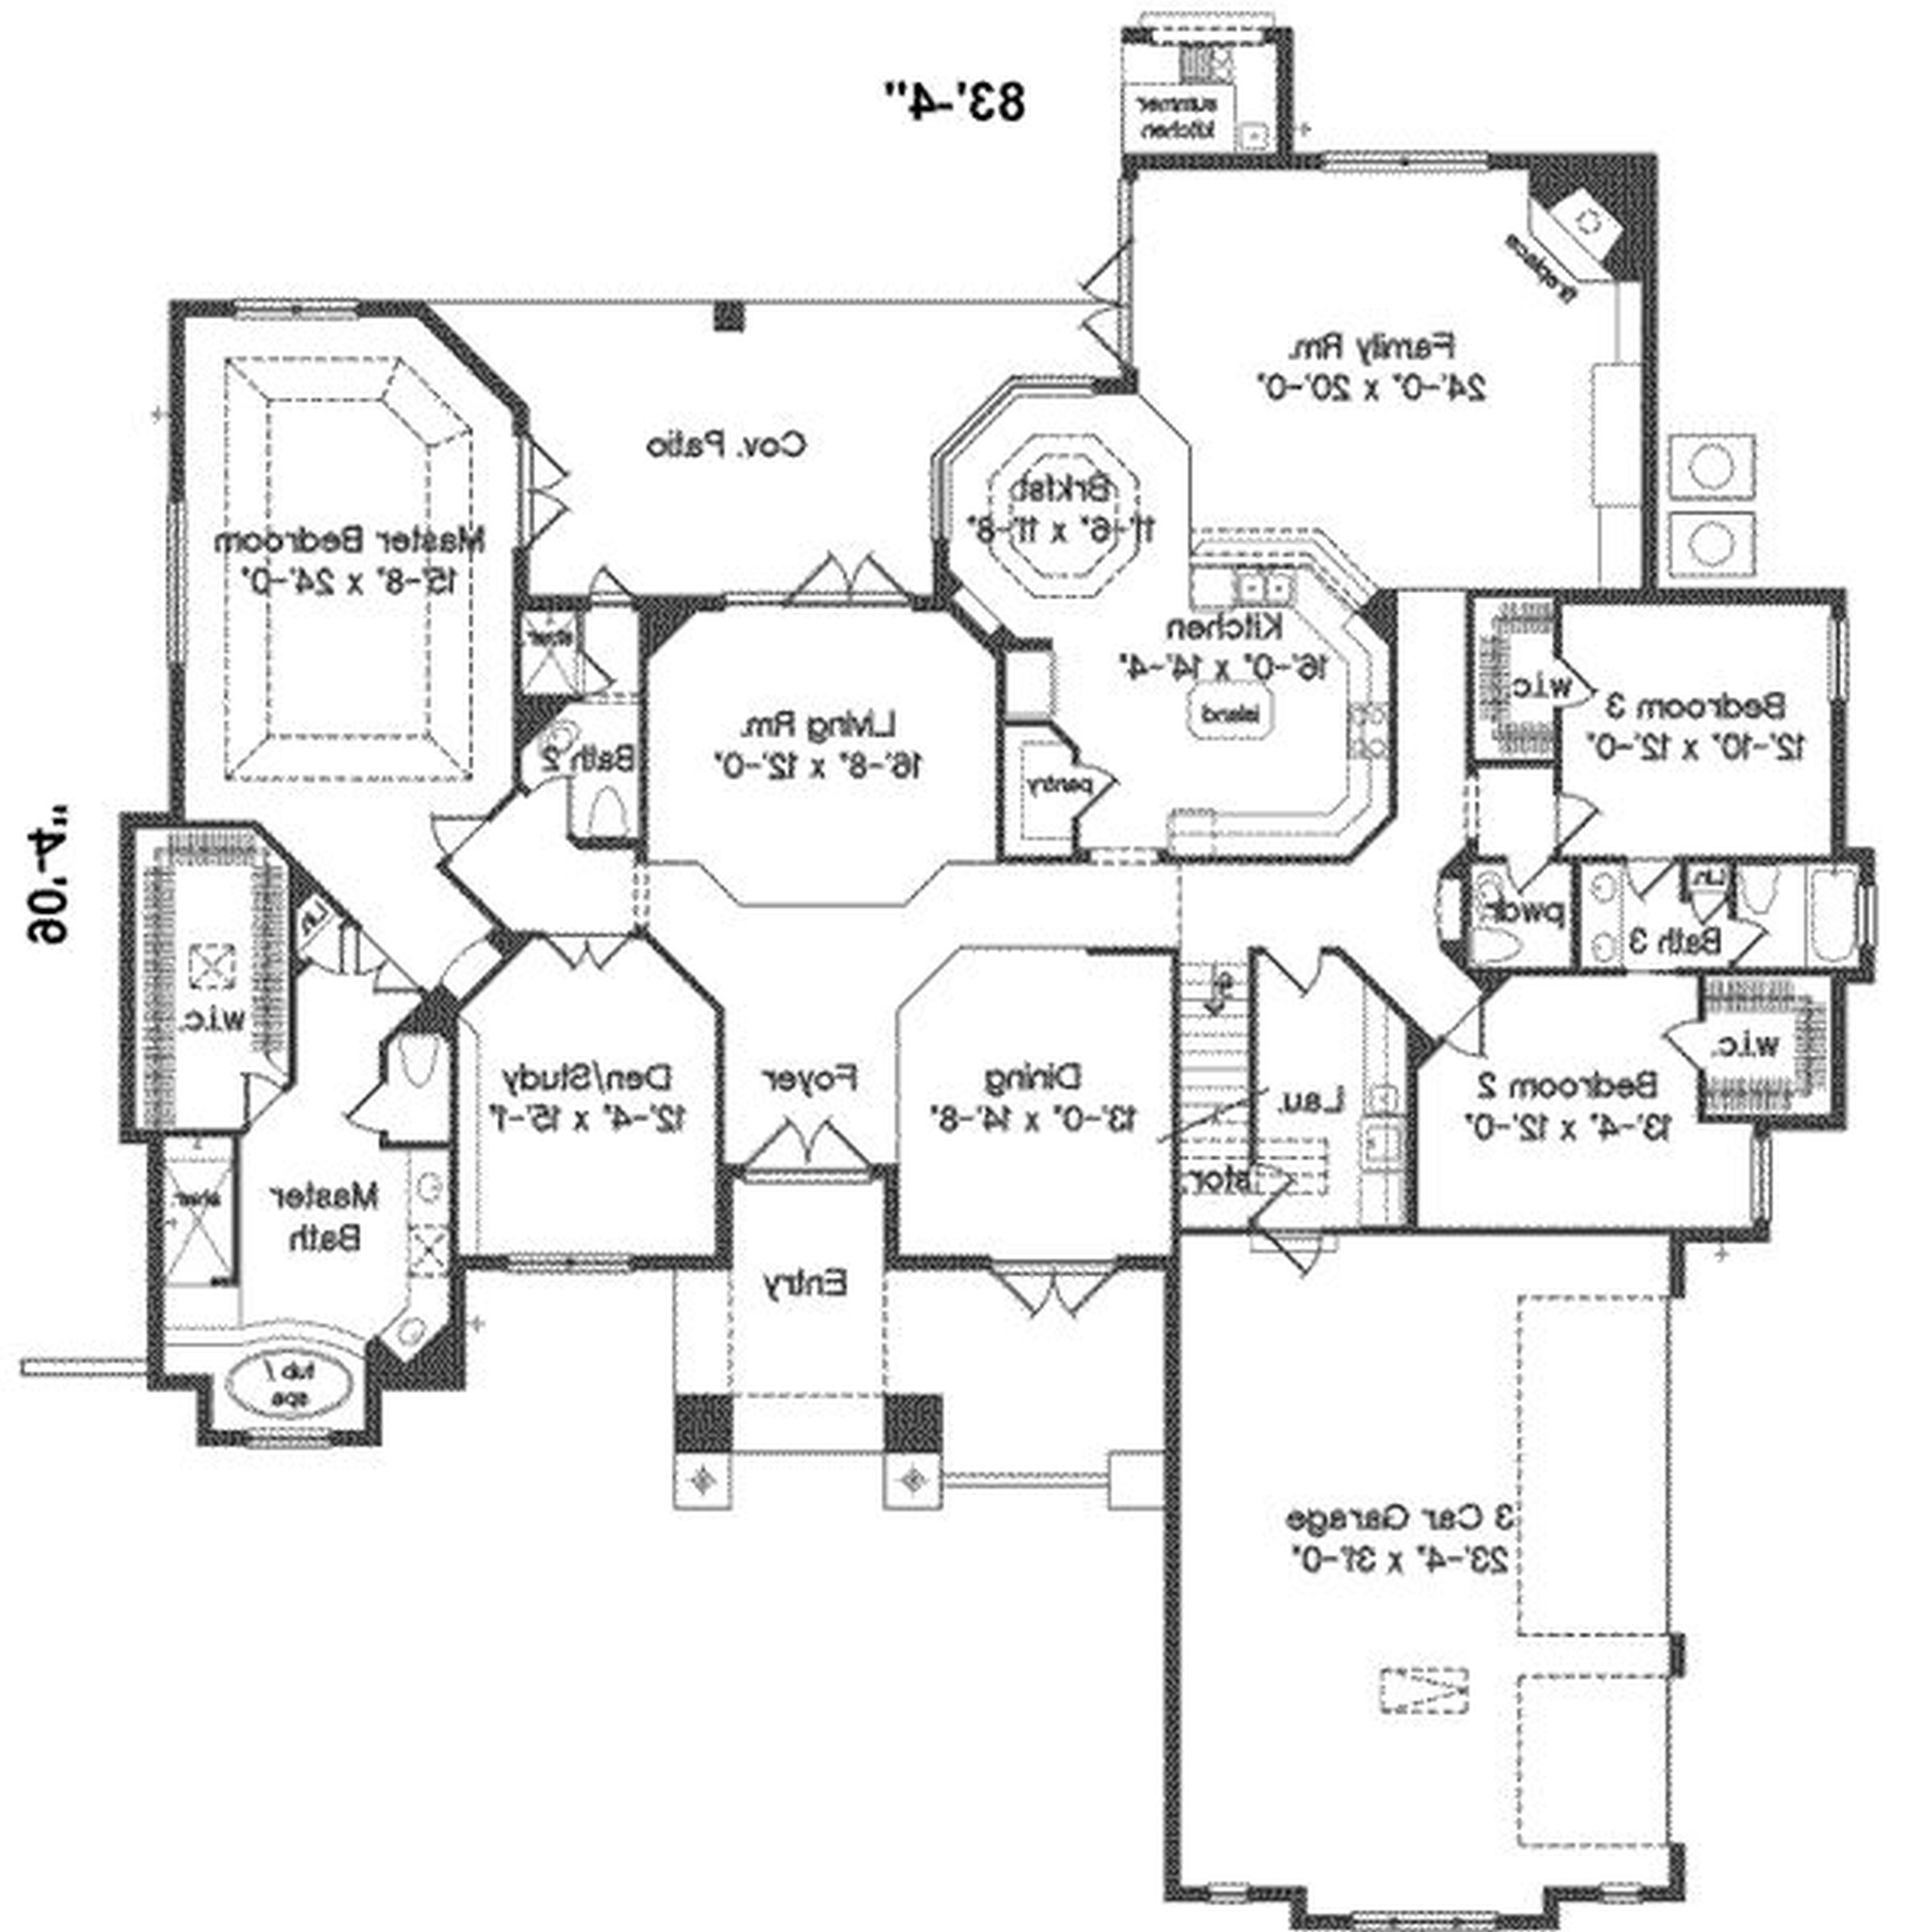 5000x5000 architecture free floor plan maker designs cad design drawing - Home Drawing App